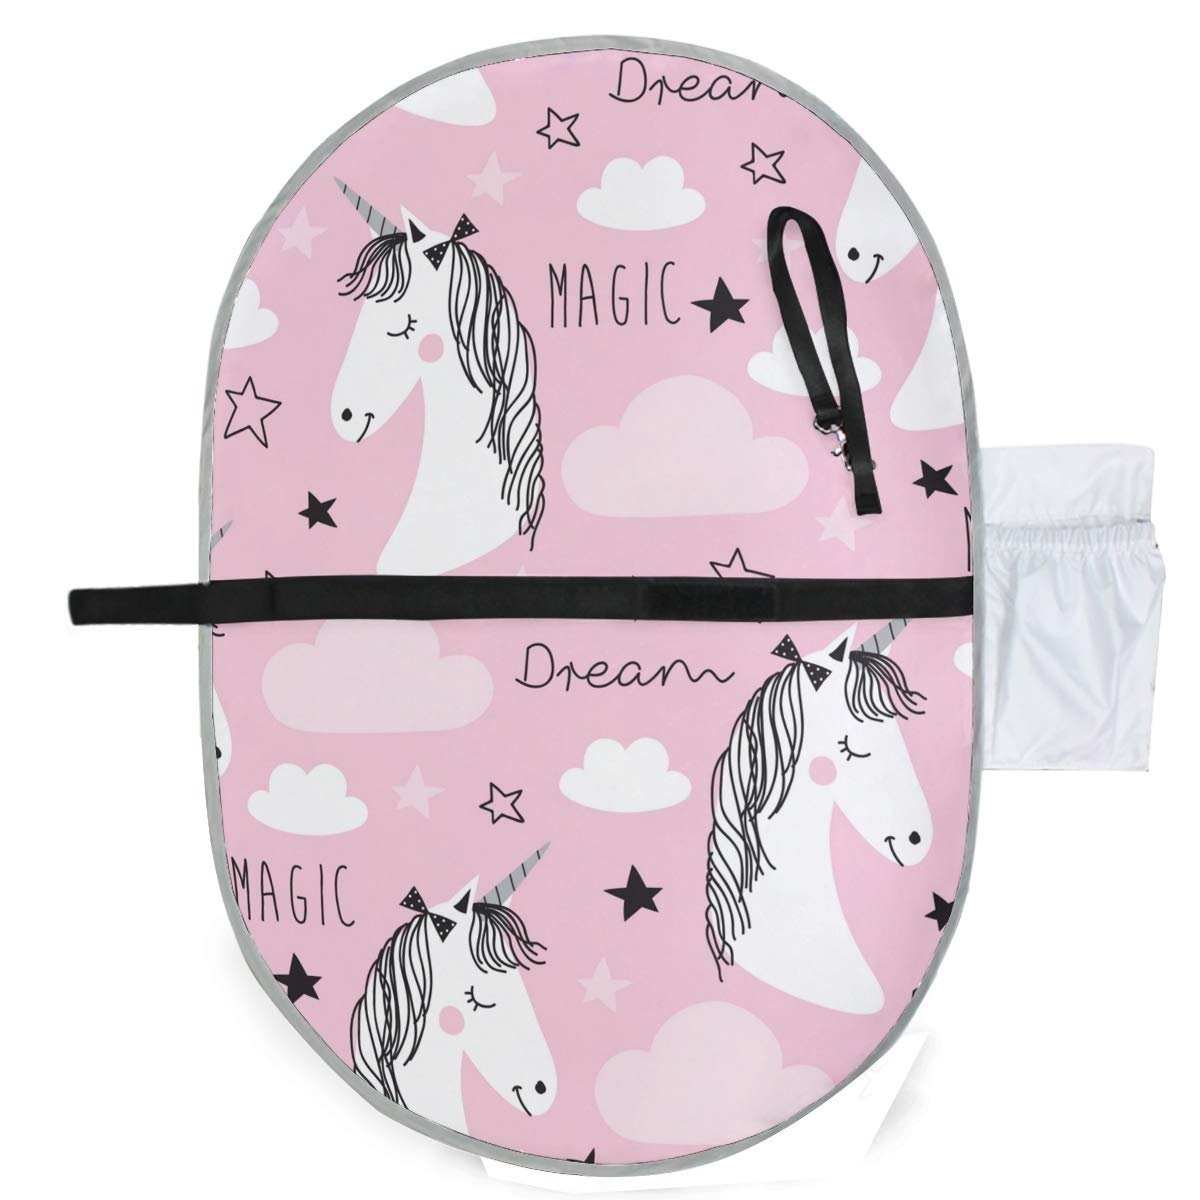 ATONO Pink Magic Unicorn Dream Stars Portable Changing Pads Toddler Mattress Pads Bed Urine Pad Slip-Resistant Leak Proof 20''X27'' Waterproof Foldable Wetting Incontinence Cover Baby Bedding